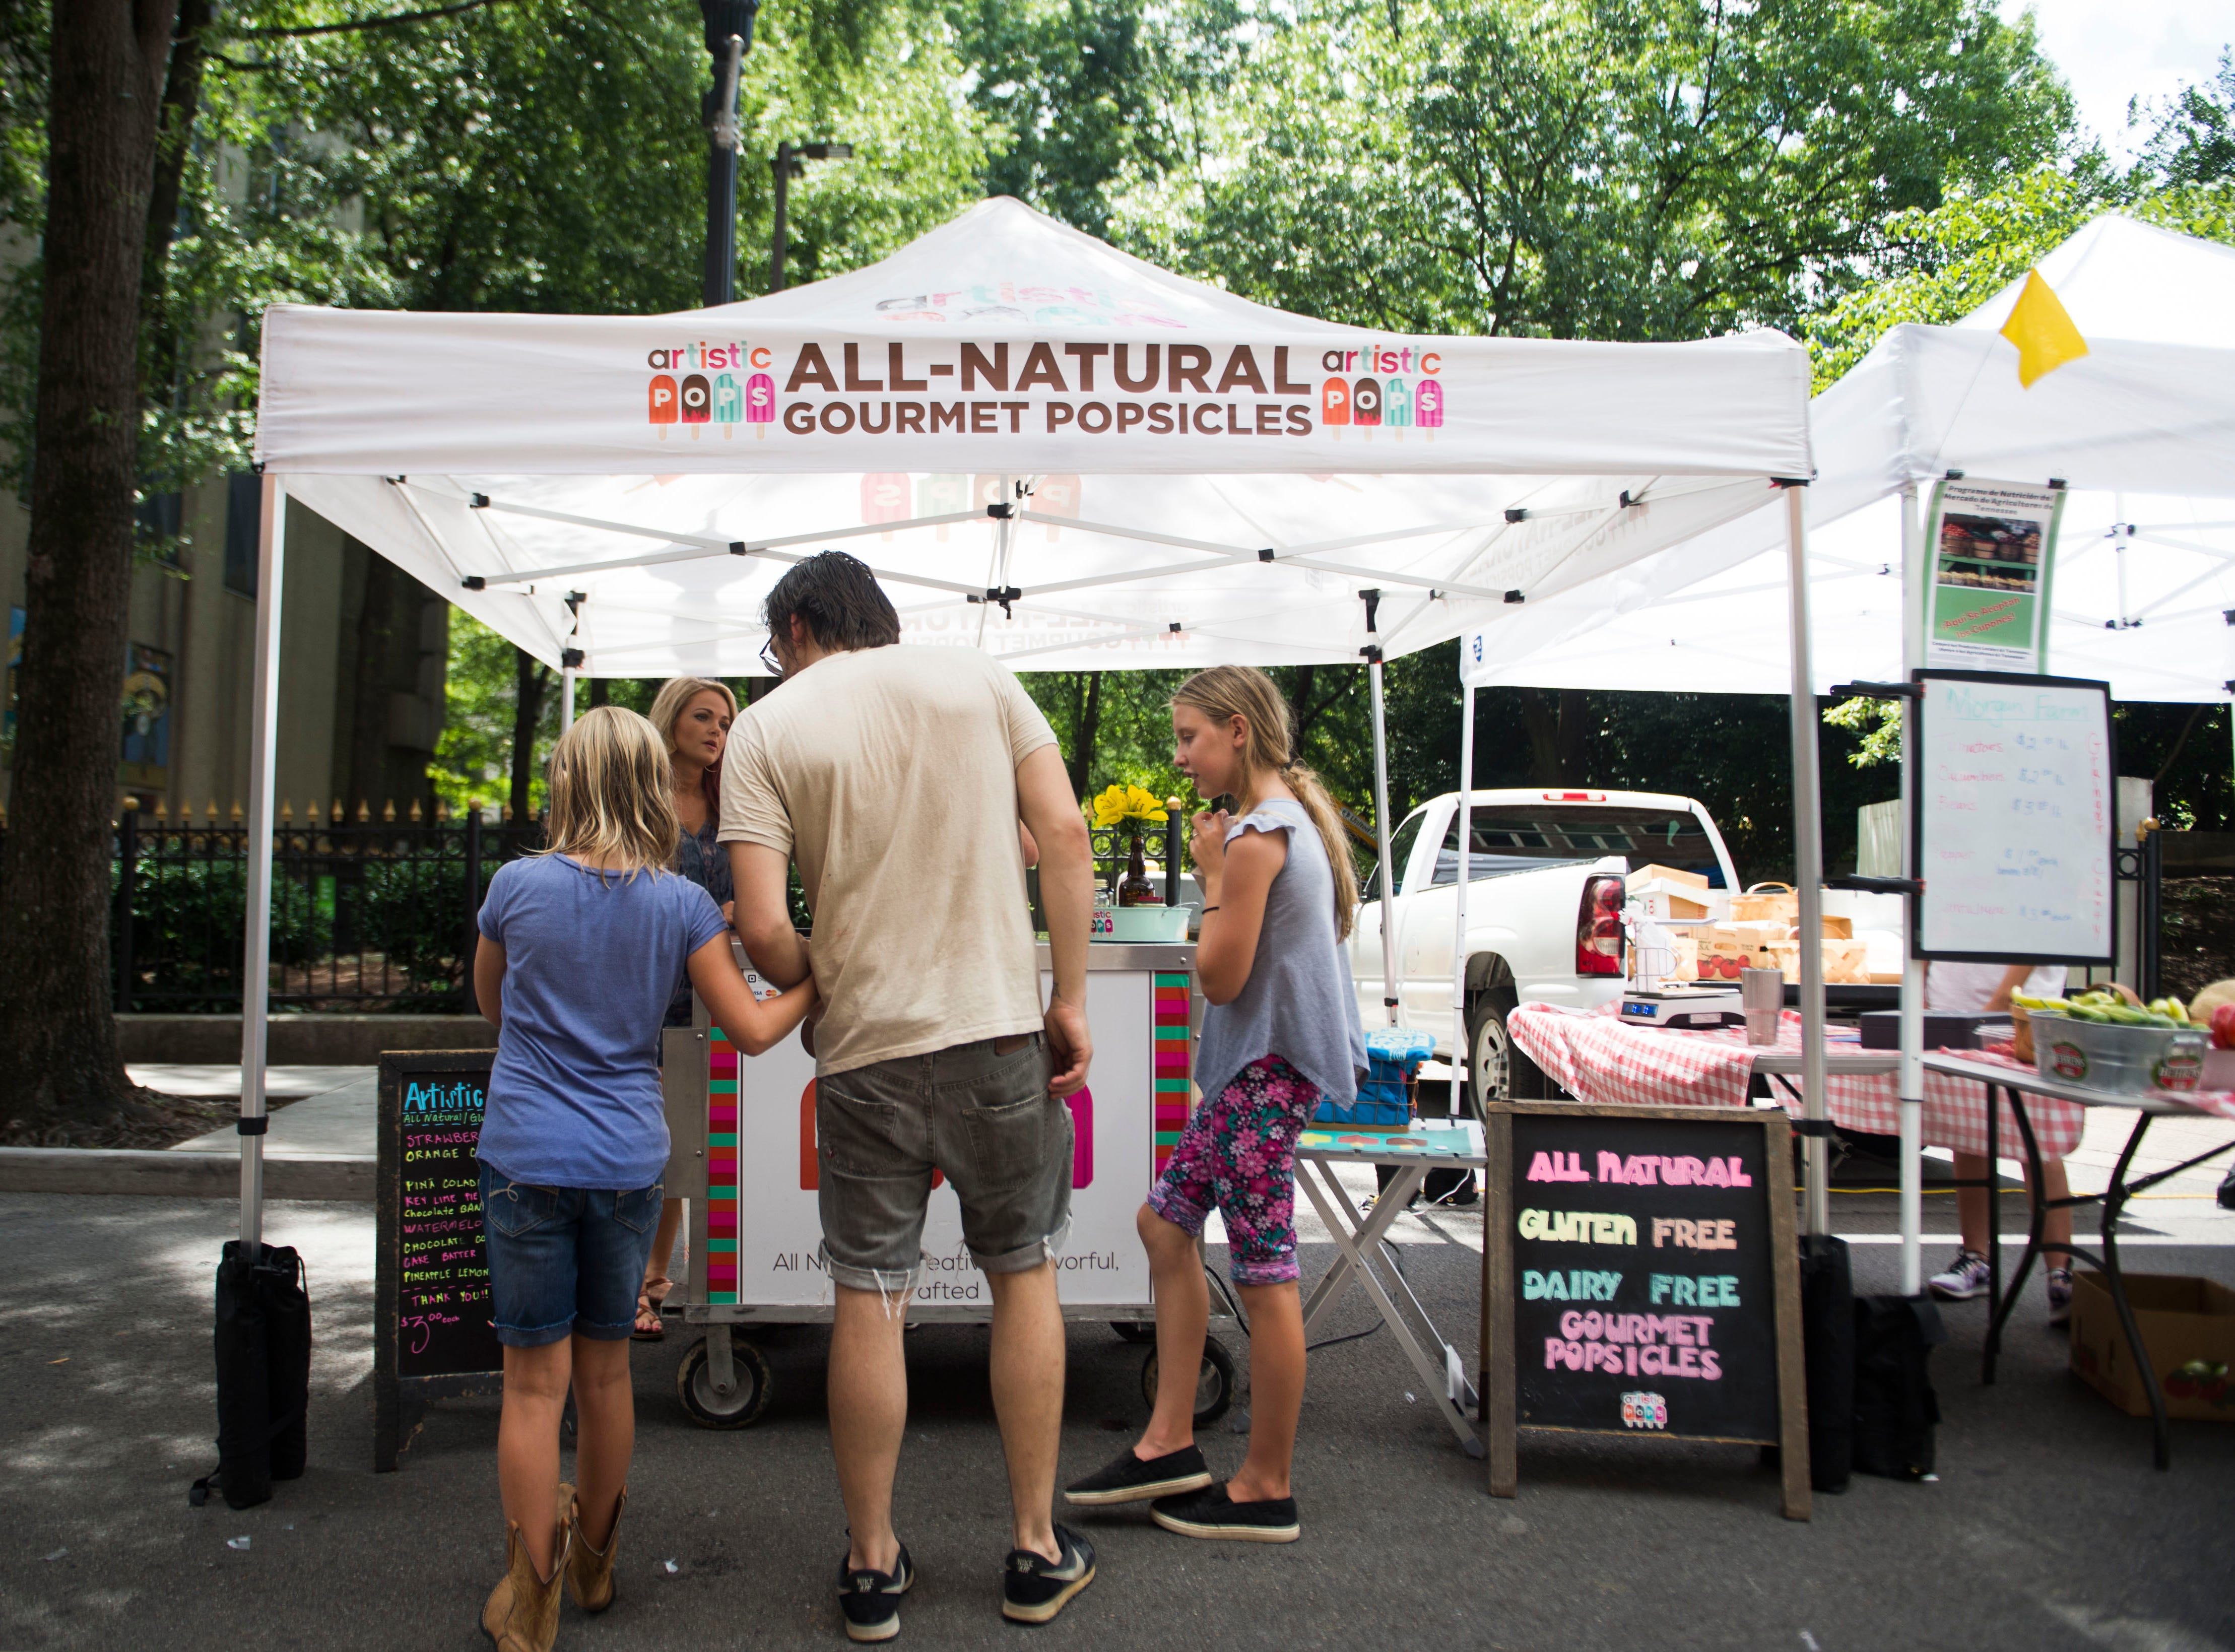 Customers buy Artistic Pops at the farmers market in downtown Knoxville Saturday, Aug. 4, 2018. Artistic Pops are gluten free, nut free, and dairy free popsicles.